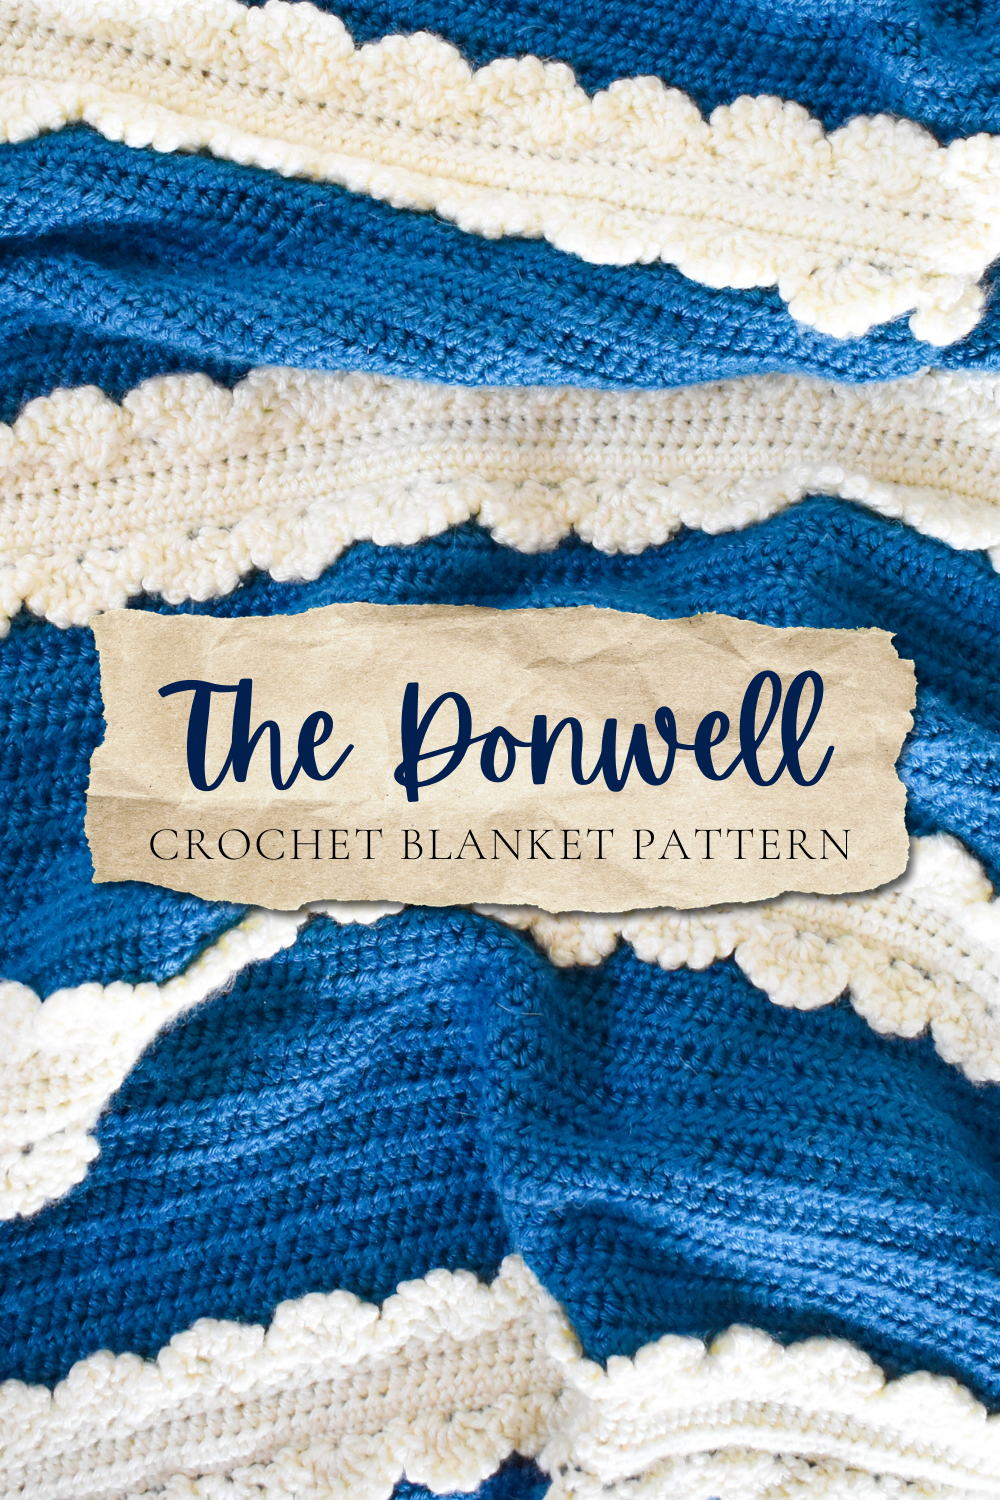 The Donwell Blanket Crochet Pattern